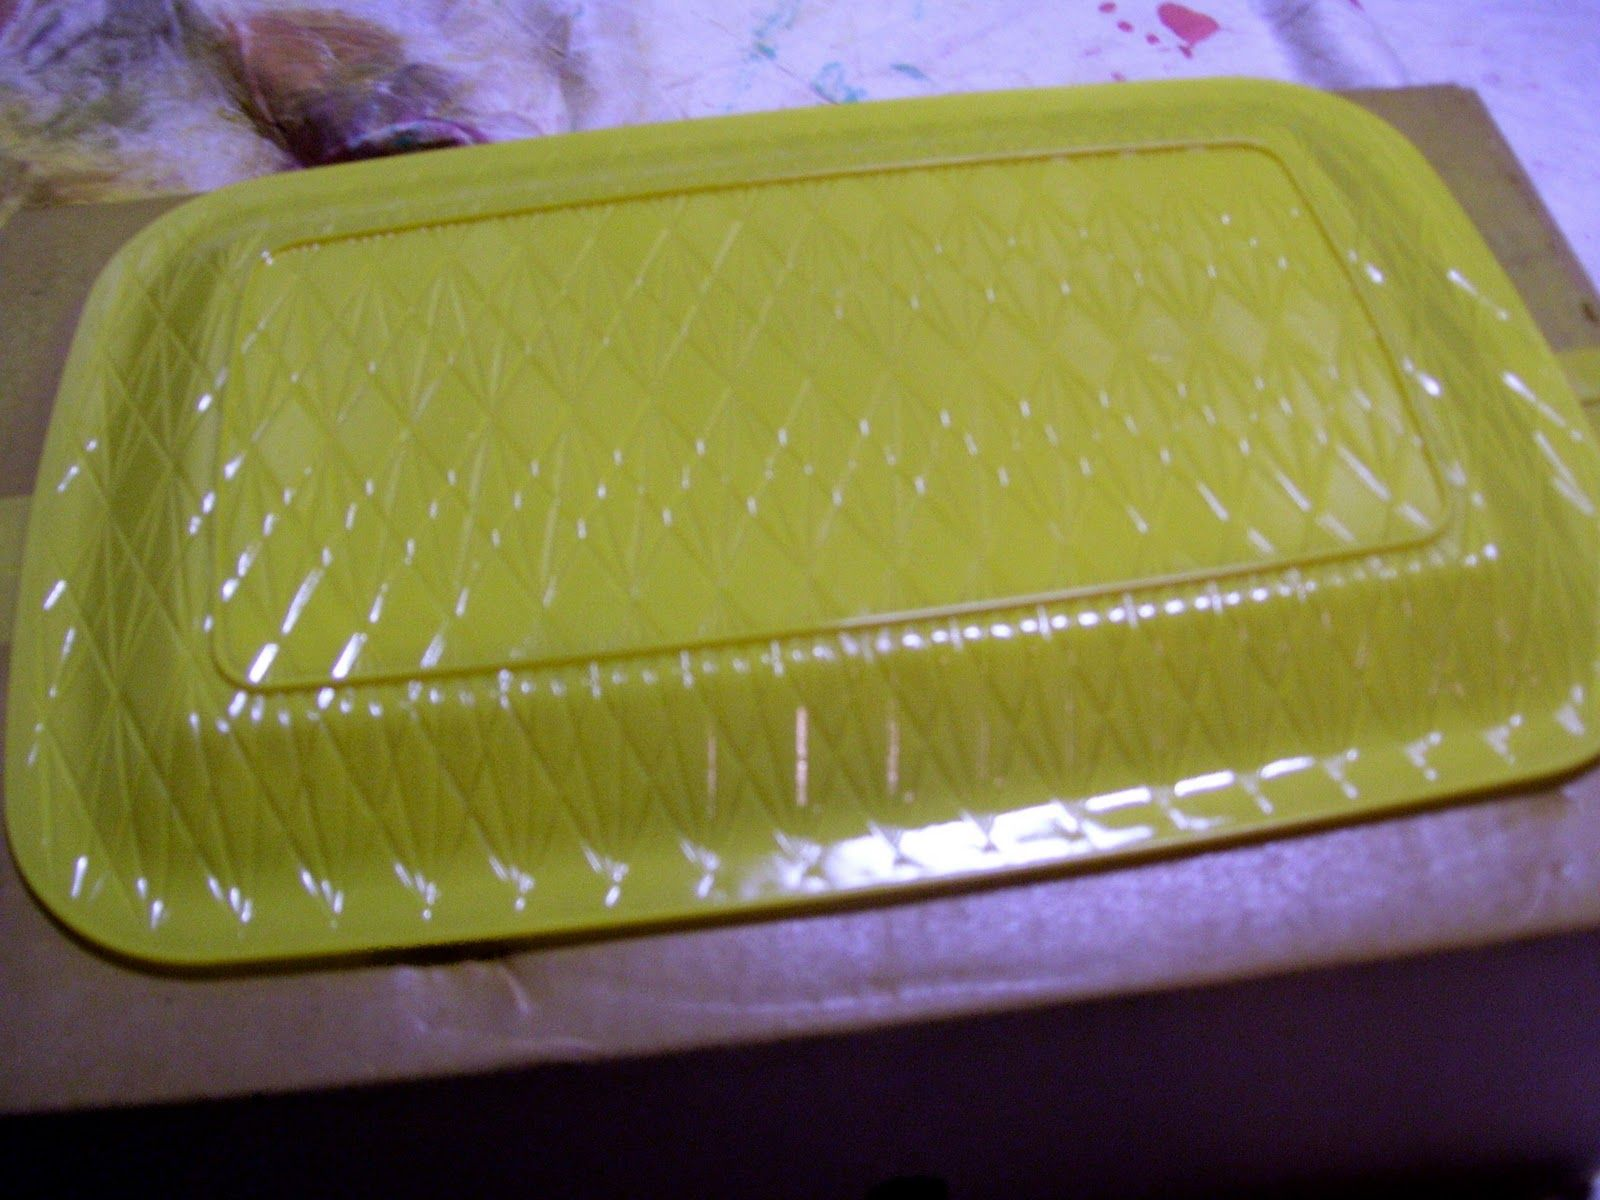 Spray Paint Platter Clear Dollar Tree Platter Or Tray Spray Paint The Back And Leave The Top Food Safe Dollar Stores Spray Paint Plastic Painting Plastic